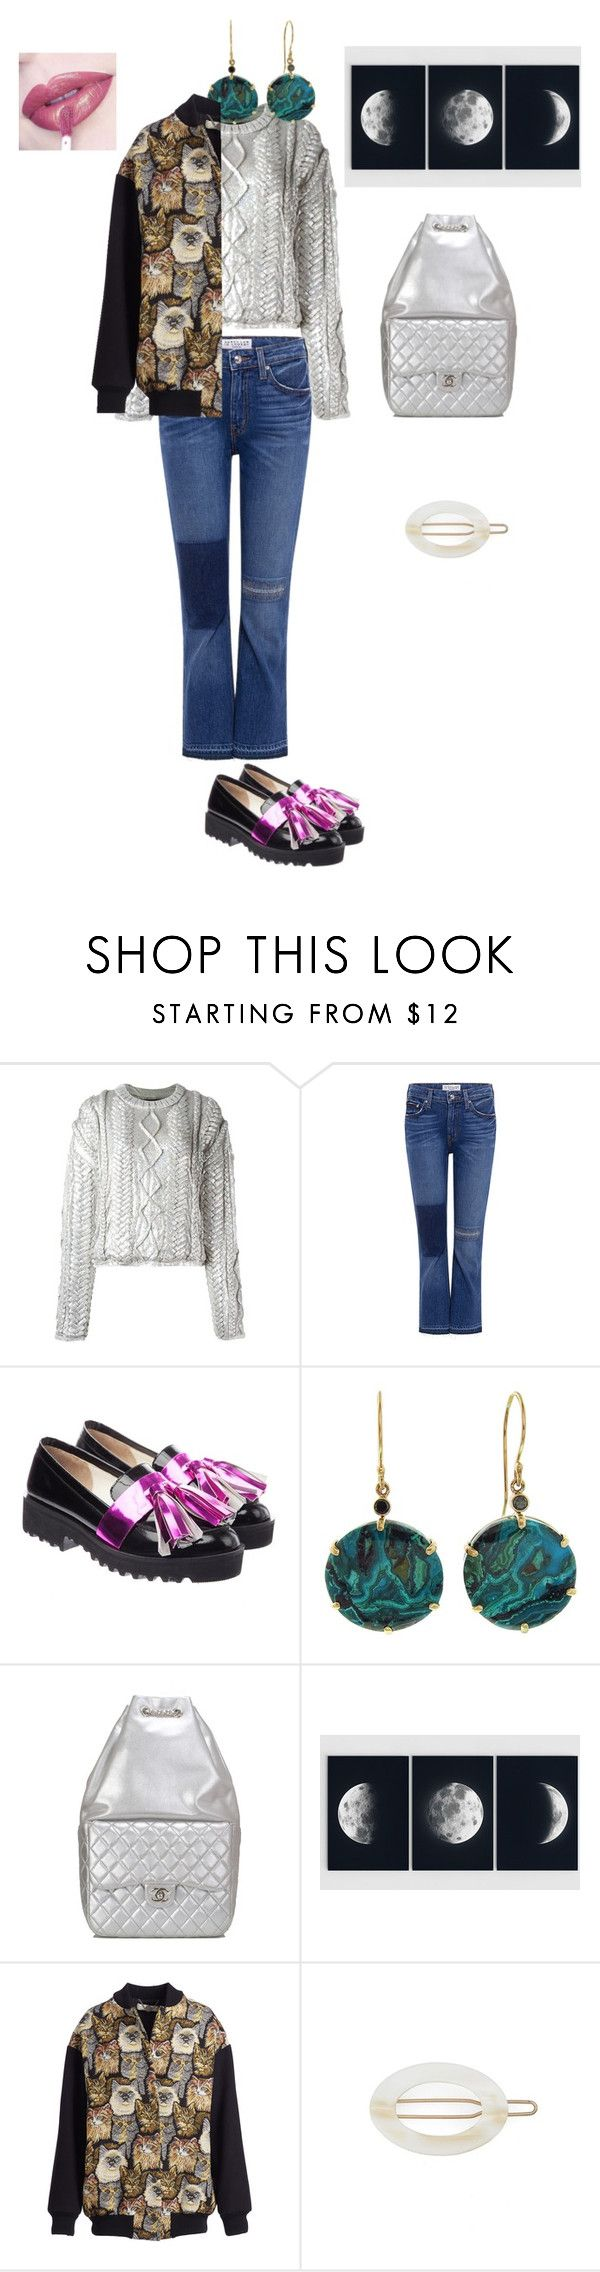 """Untitled #3164"" by ayse-sedetmen ❤ liked on Polyvore featuring Filles à papa, 10 Crosby Derek Lam, Anouki, Jamie Joseph, Chanel, STELLA McCARTNEY, France Luxe and Anastasia Beverly Hills"